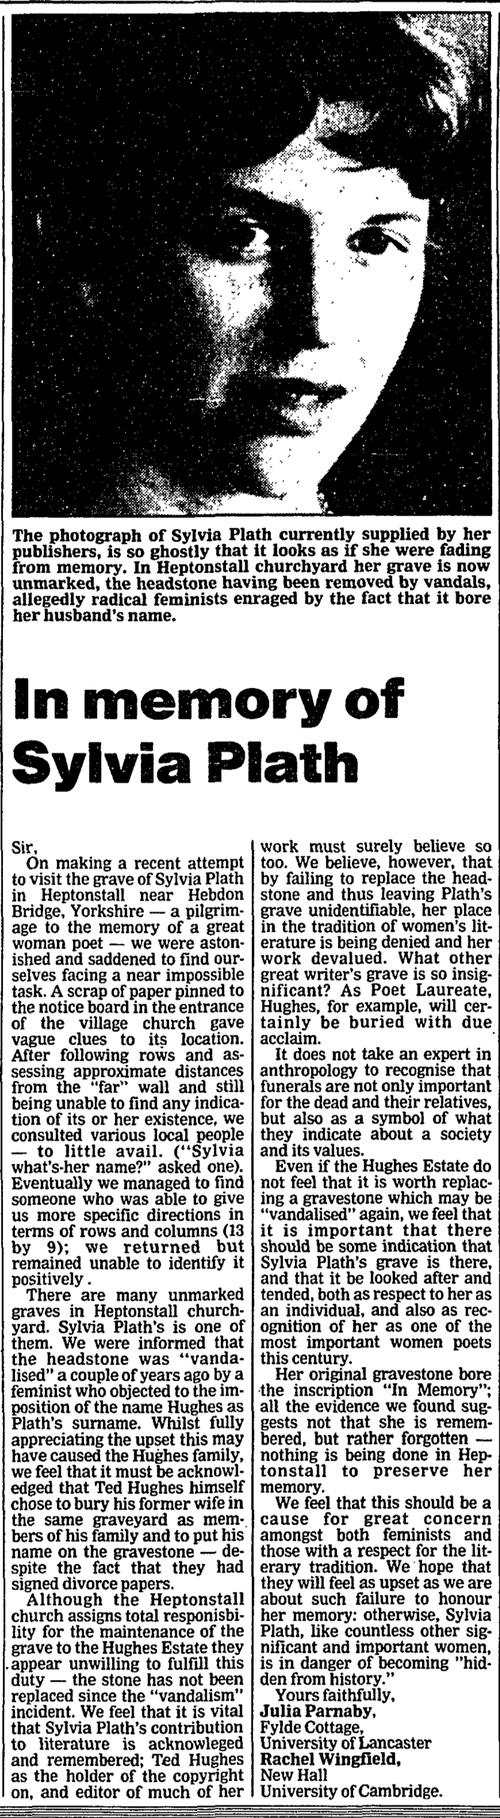 sylvia plath last words essay Comparing and contrasting two poems mirror and blackberrying by the author sylvia plath in this essay i shall be comparing and contrasting two poems by the author sylvia plath the two poems are 'blackberrying' and 'mirror' sylvia plath born in boston, massachusetts 1932 was the wife of another famous yet complicated poet ted hughes.